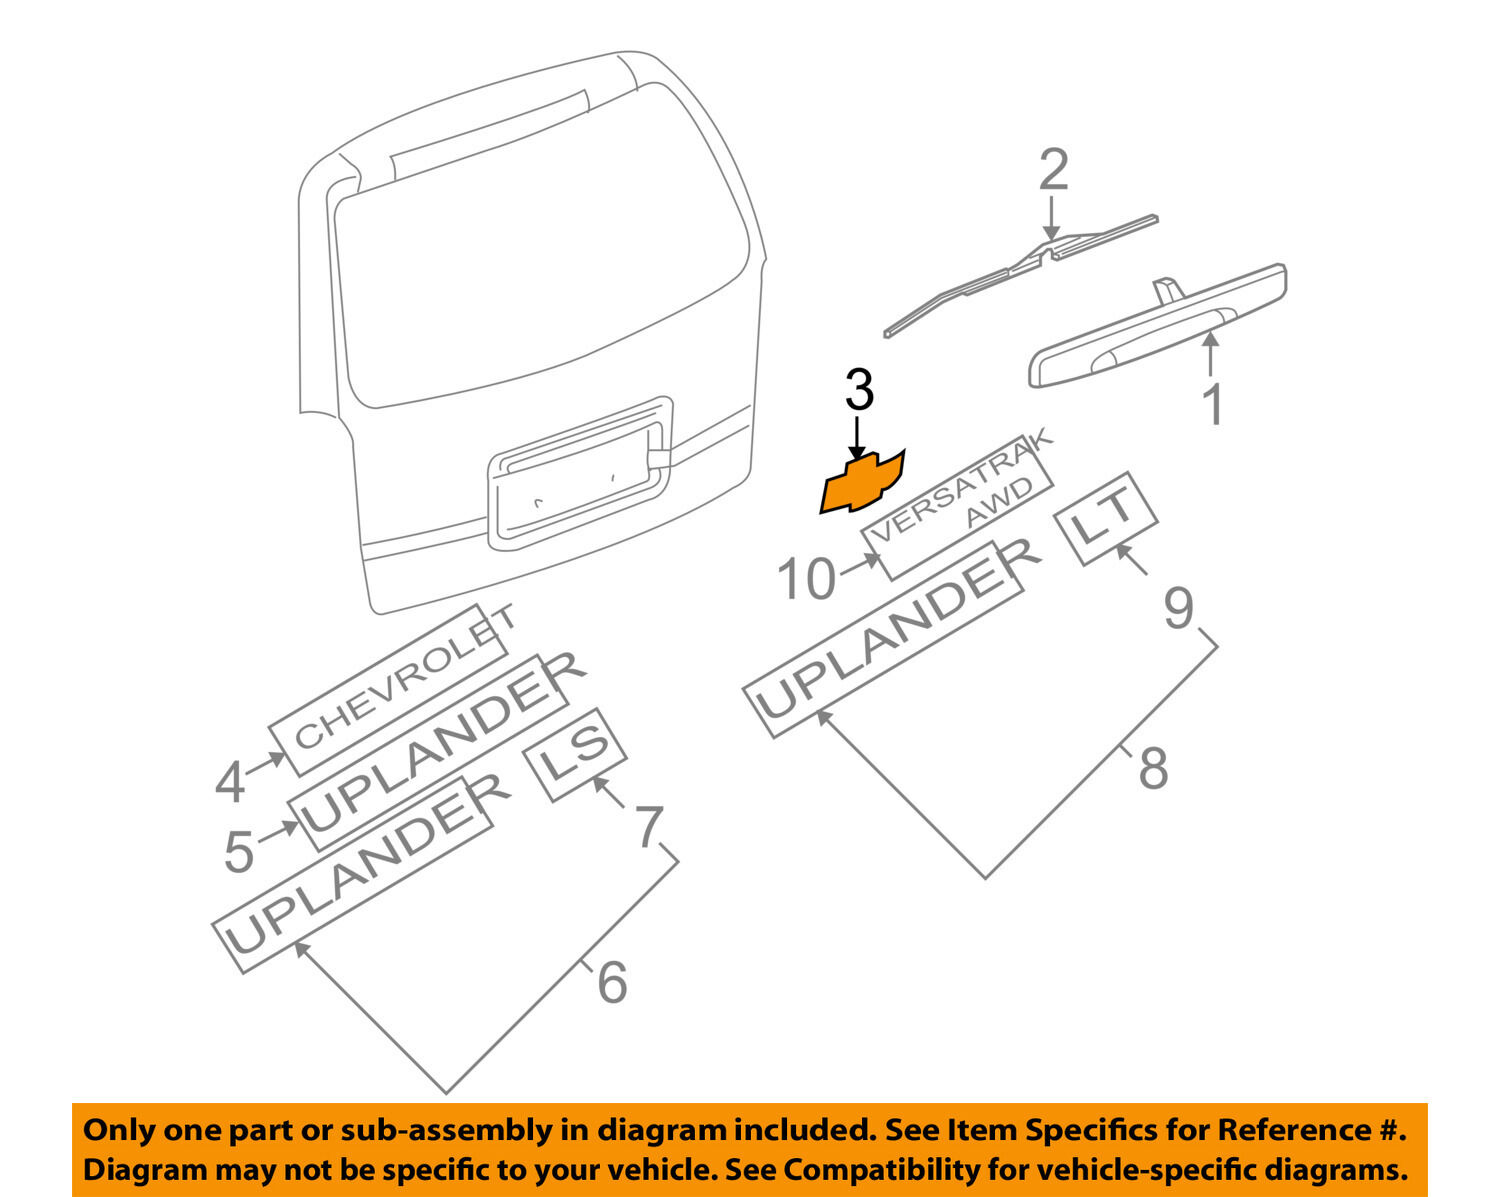 Hhr Chevy Talegate Diagrams Online Manuual Of Wiring Diagram Tailgate Bowtie Emblem Gold New Oem Gm 19209664 For Sale Rh Restomods Com